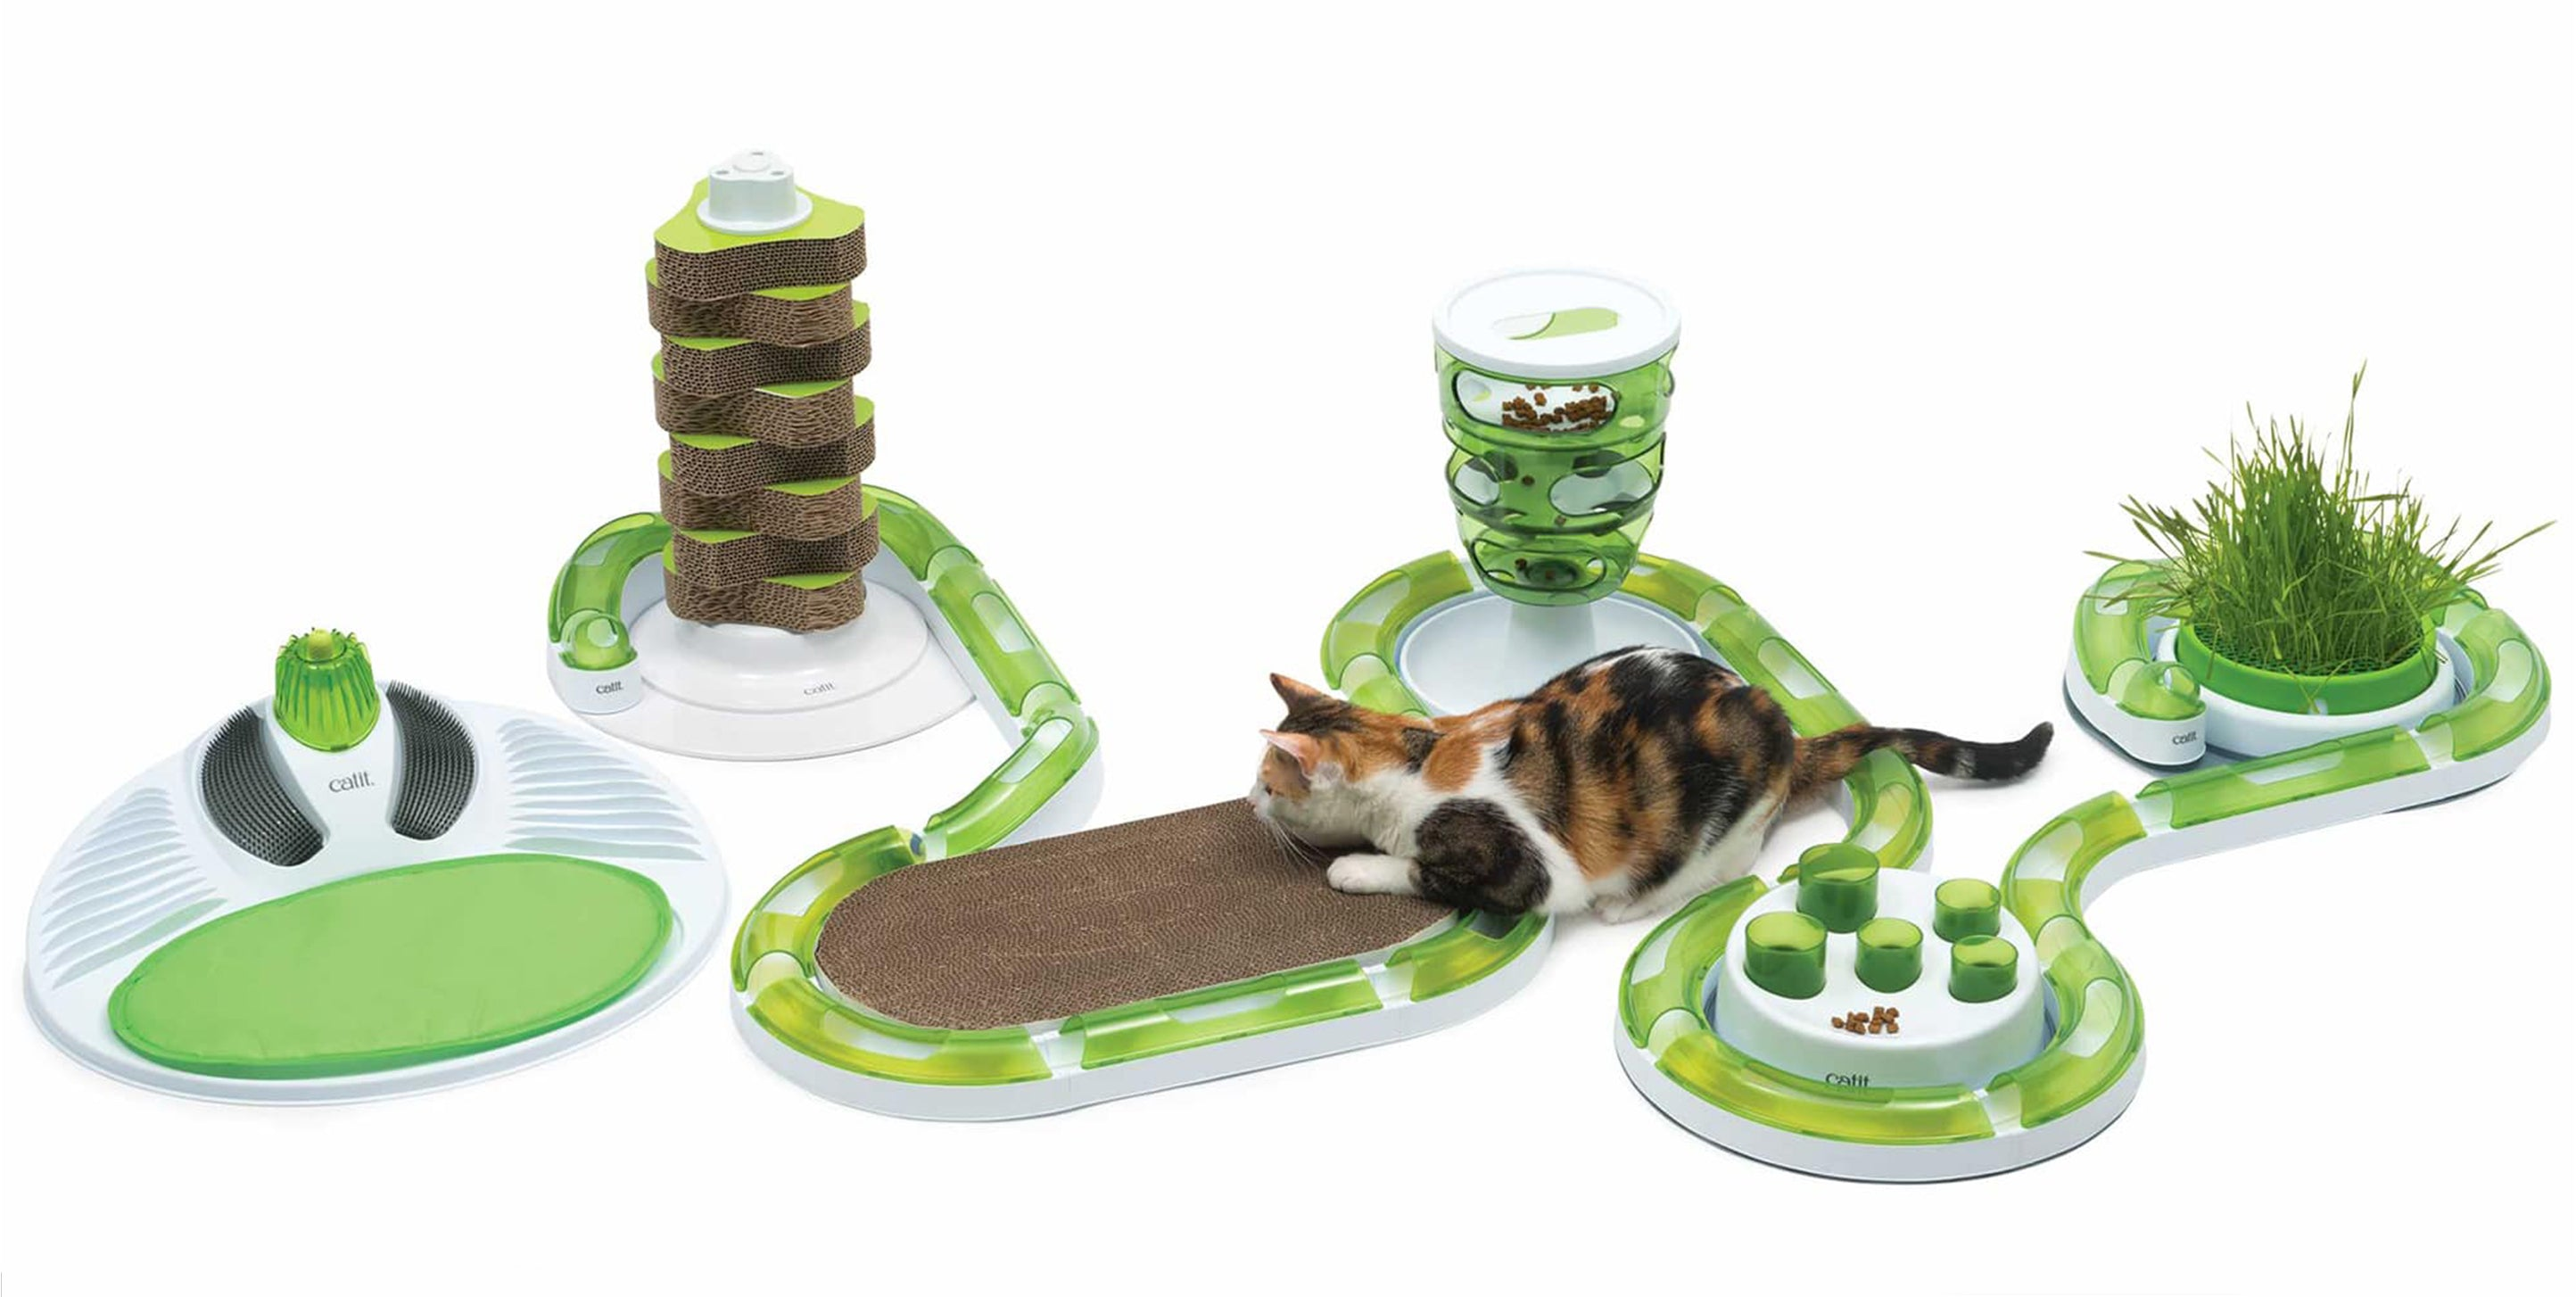 catit senses 2.0 play sets and accessories - interactive cat toys